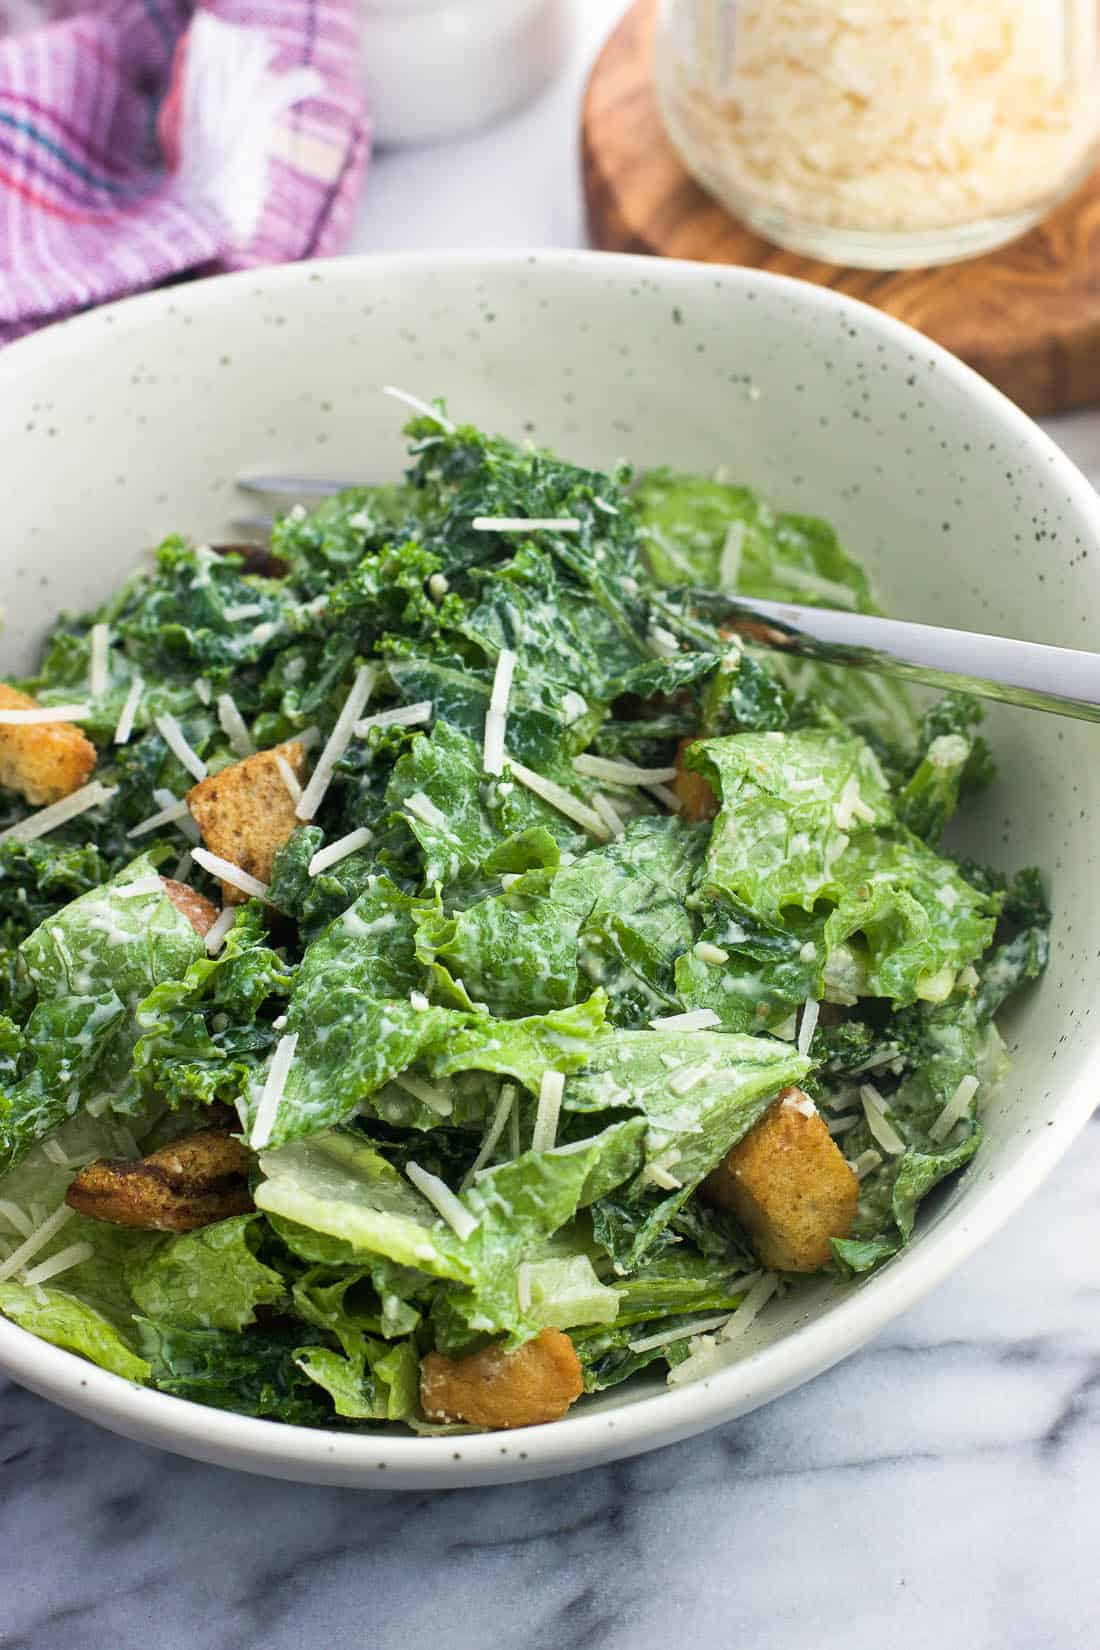 Greek yogurt kale caesar salad in a bowl with a fork